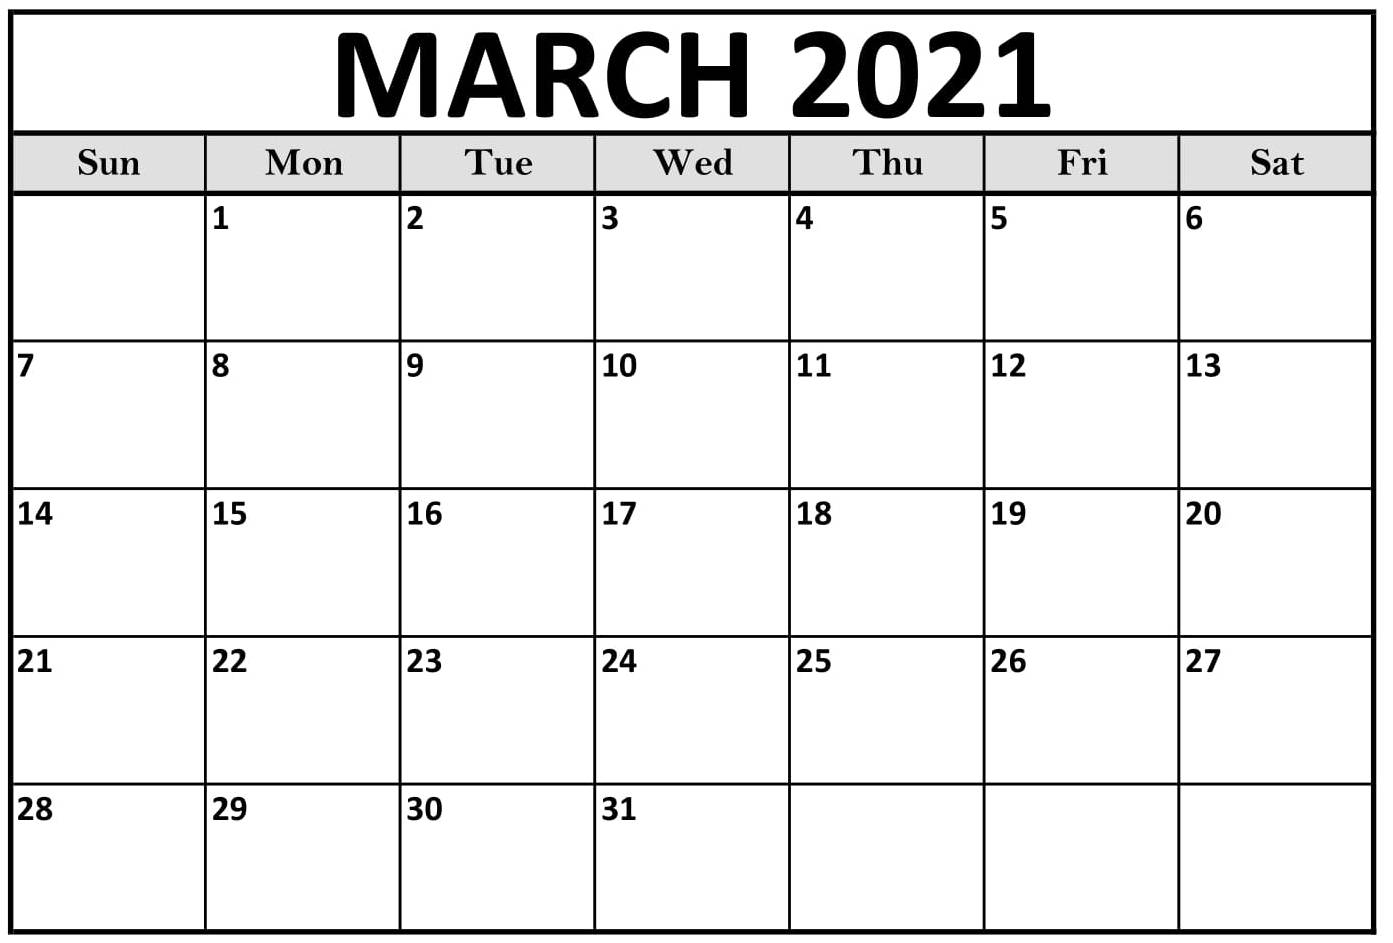 March 2021 Calendar With Holidays Dates Template Web